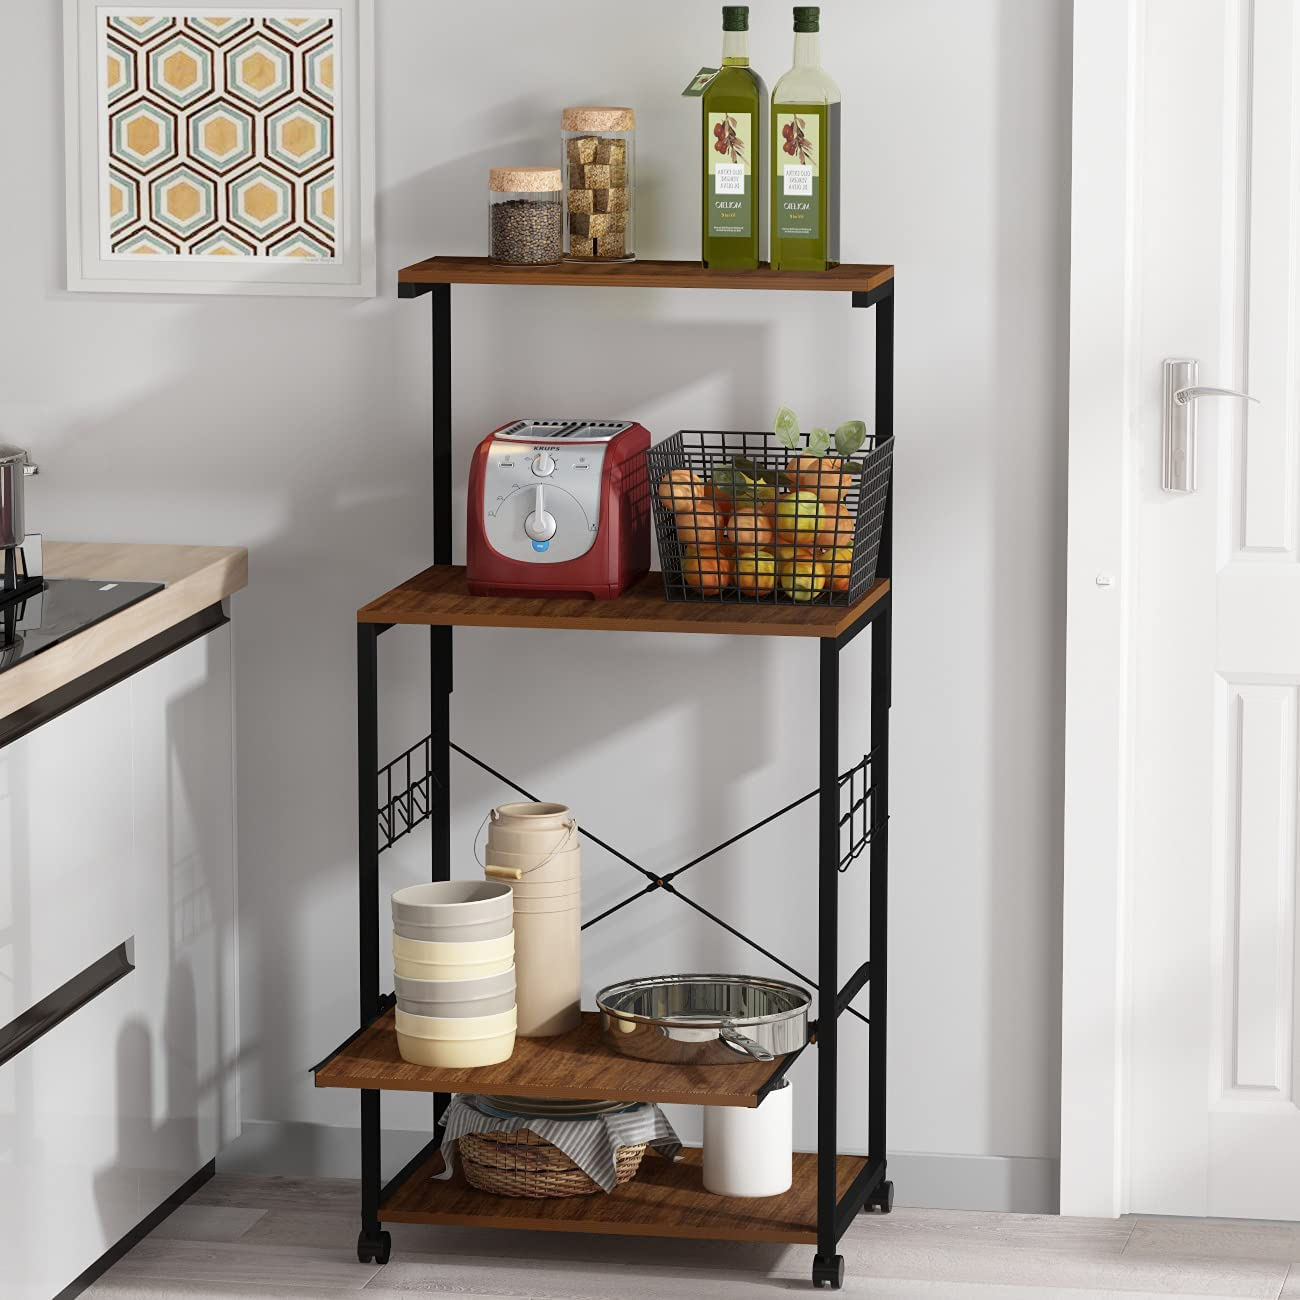 FUFUGAGA 4-Tier Kitchen Bakers Rack Micr Deluxe Hutch Industrial with Ranking TOP11